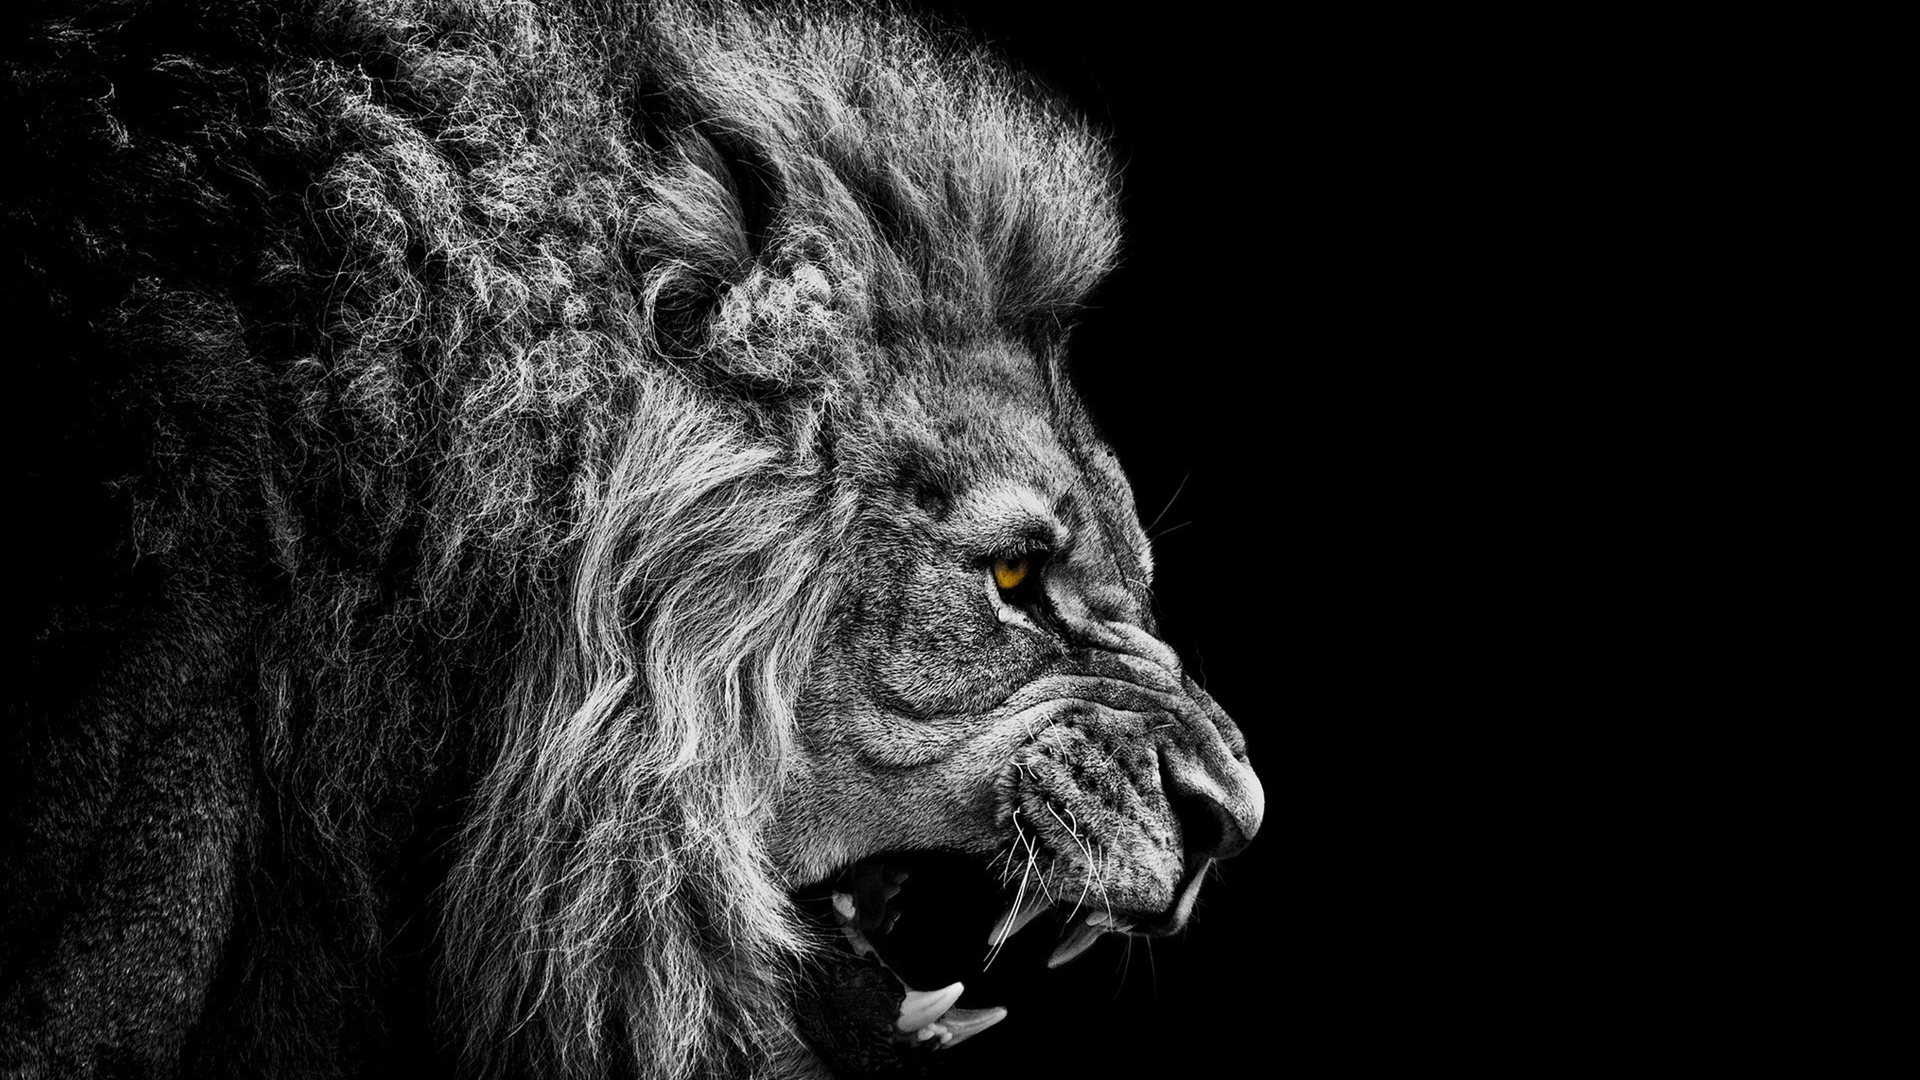 Black Lion Wallpaper HD